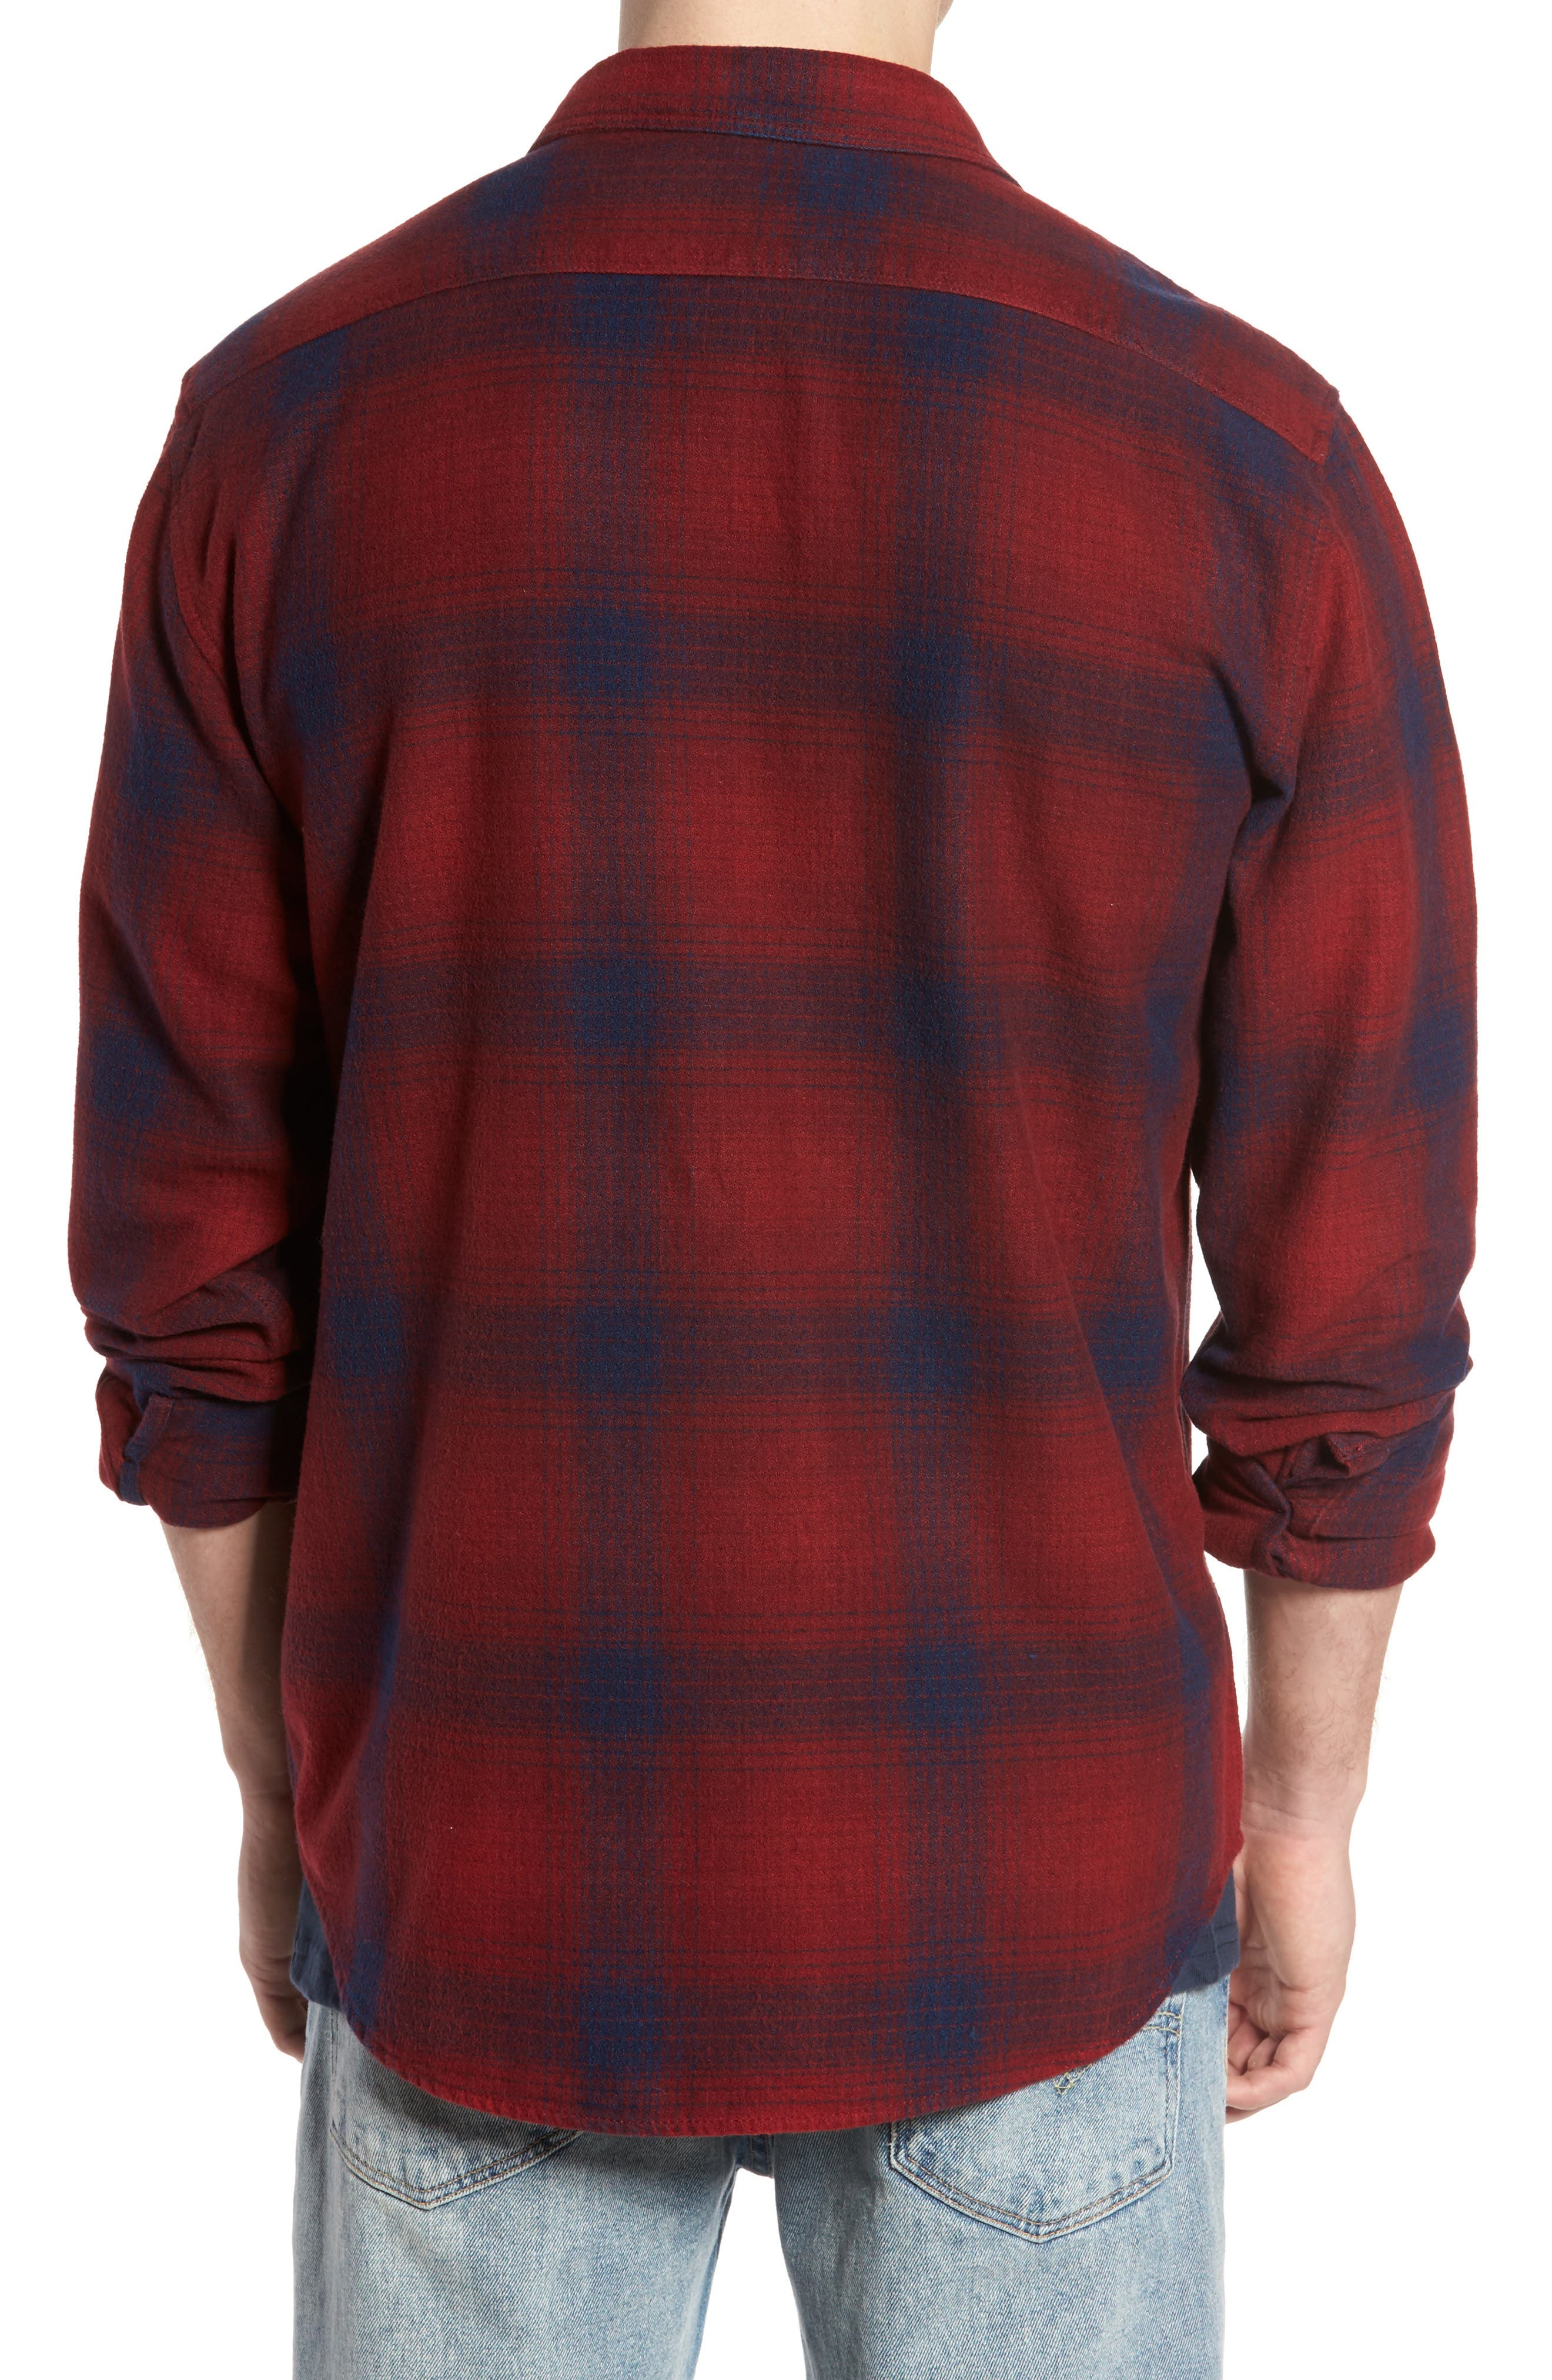 Ventura Flannel Shirt,                             Alternate thumbnail 2, color,                             Red